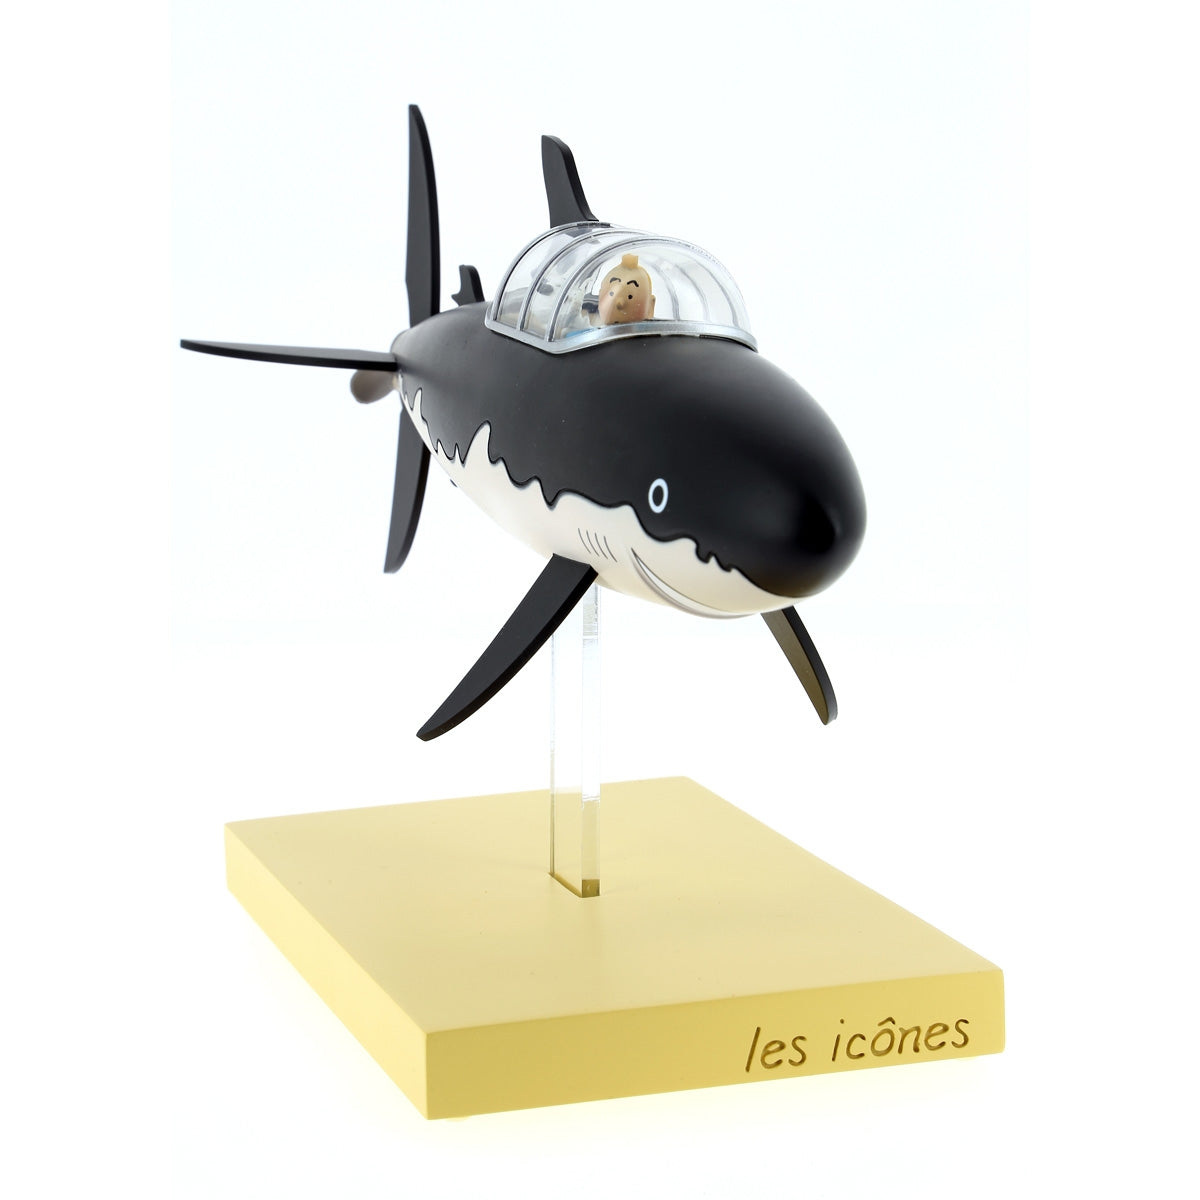 RESIN COLLECTIBLE: Icons - Submarine